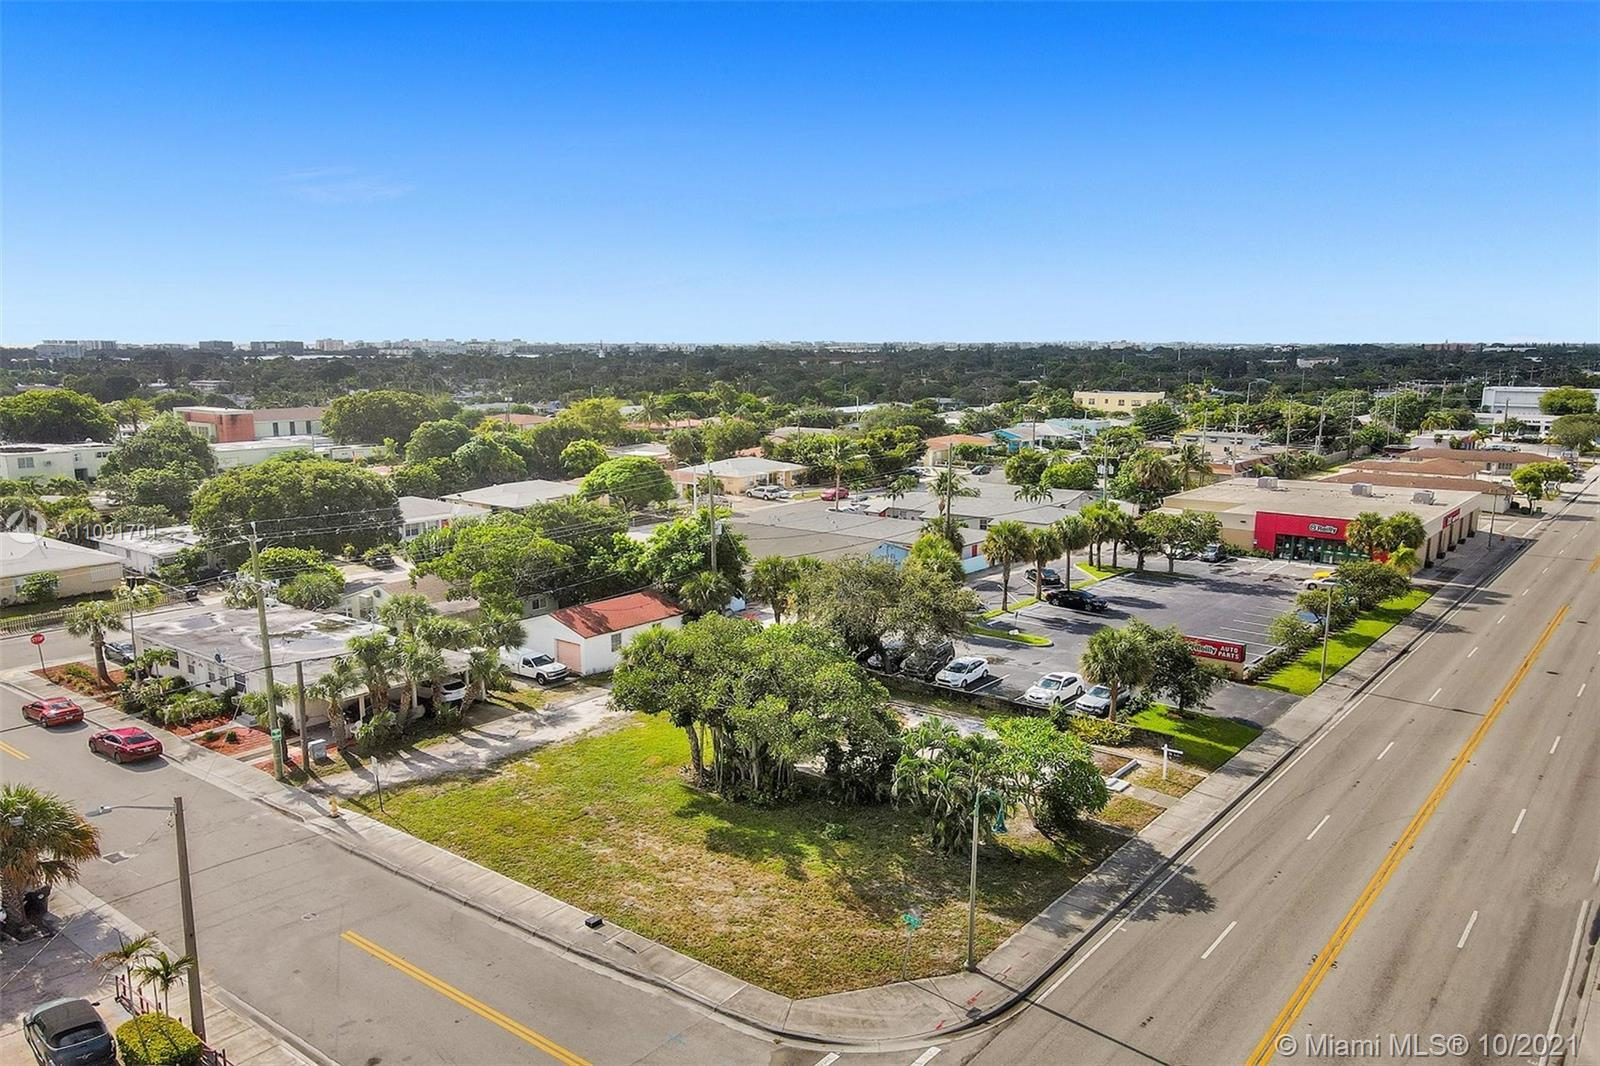 PRIME MIXED USE ZONING CORNER LOT ON N. DIXIE AND 15TH AVE. LOTS OF VISIBILITY. EASY ACCESS TO 95, B